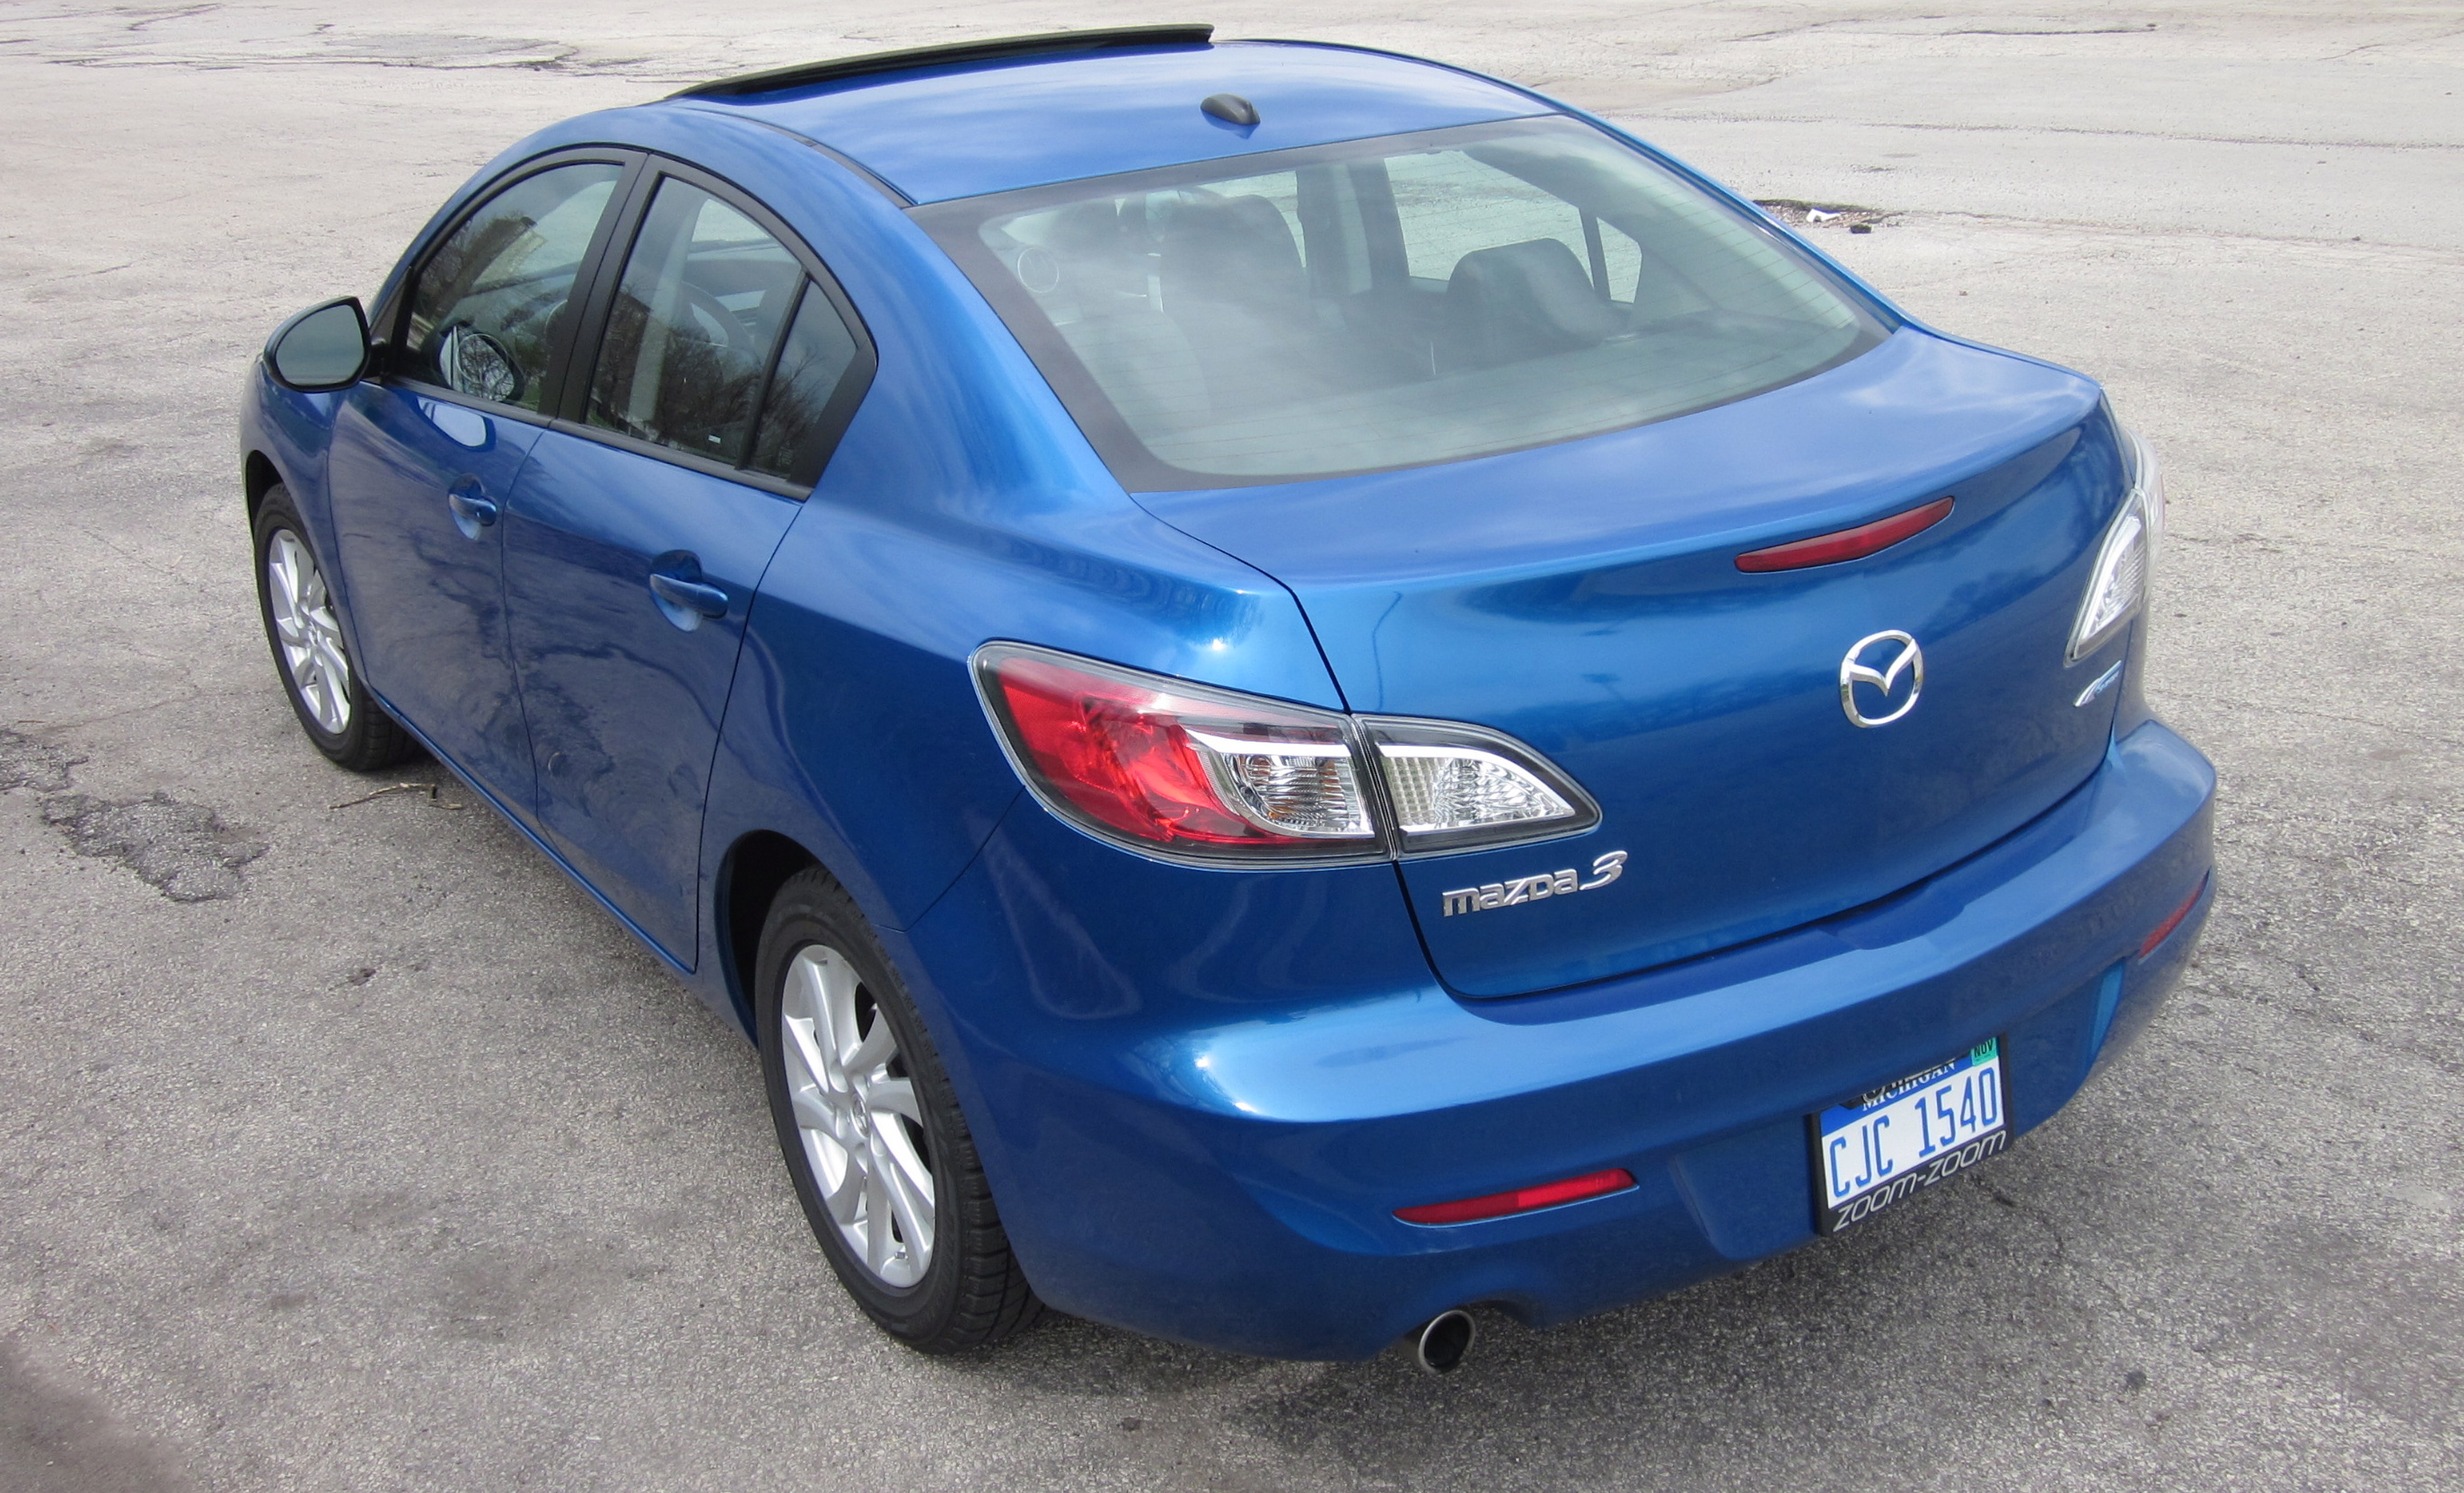 2012 mazda3 i skyactiv sedan ride and review by larry nutson